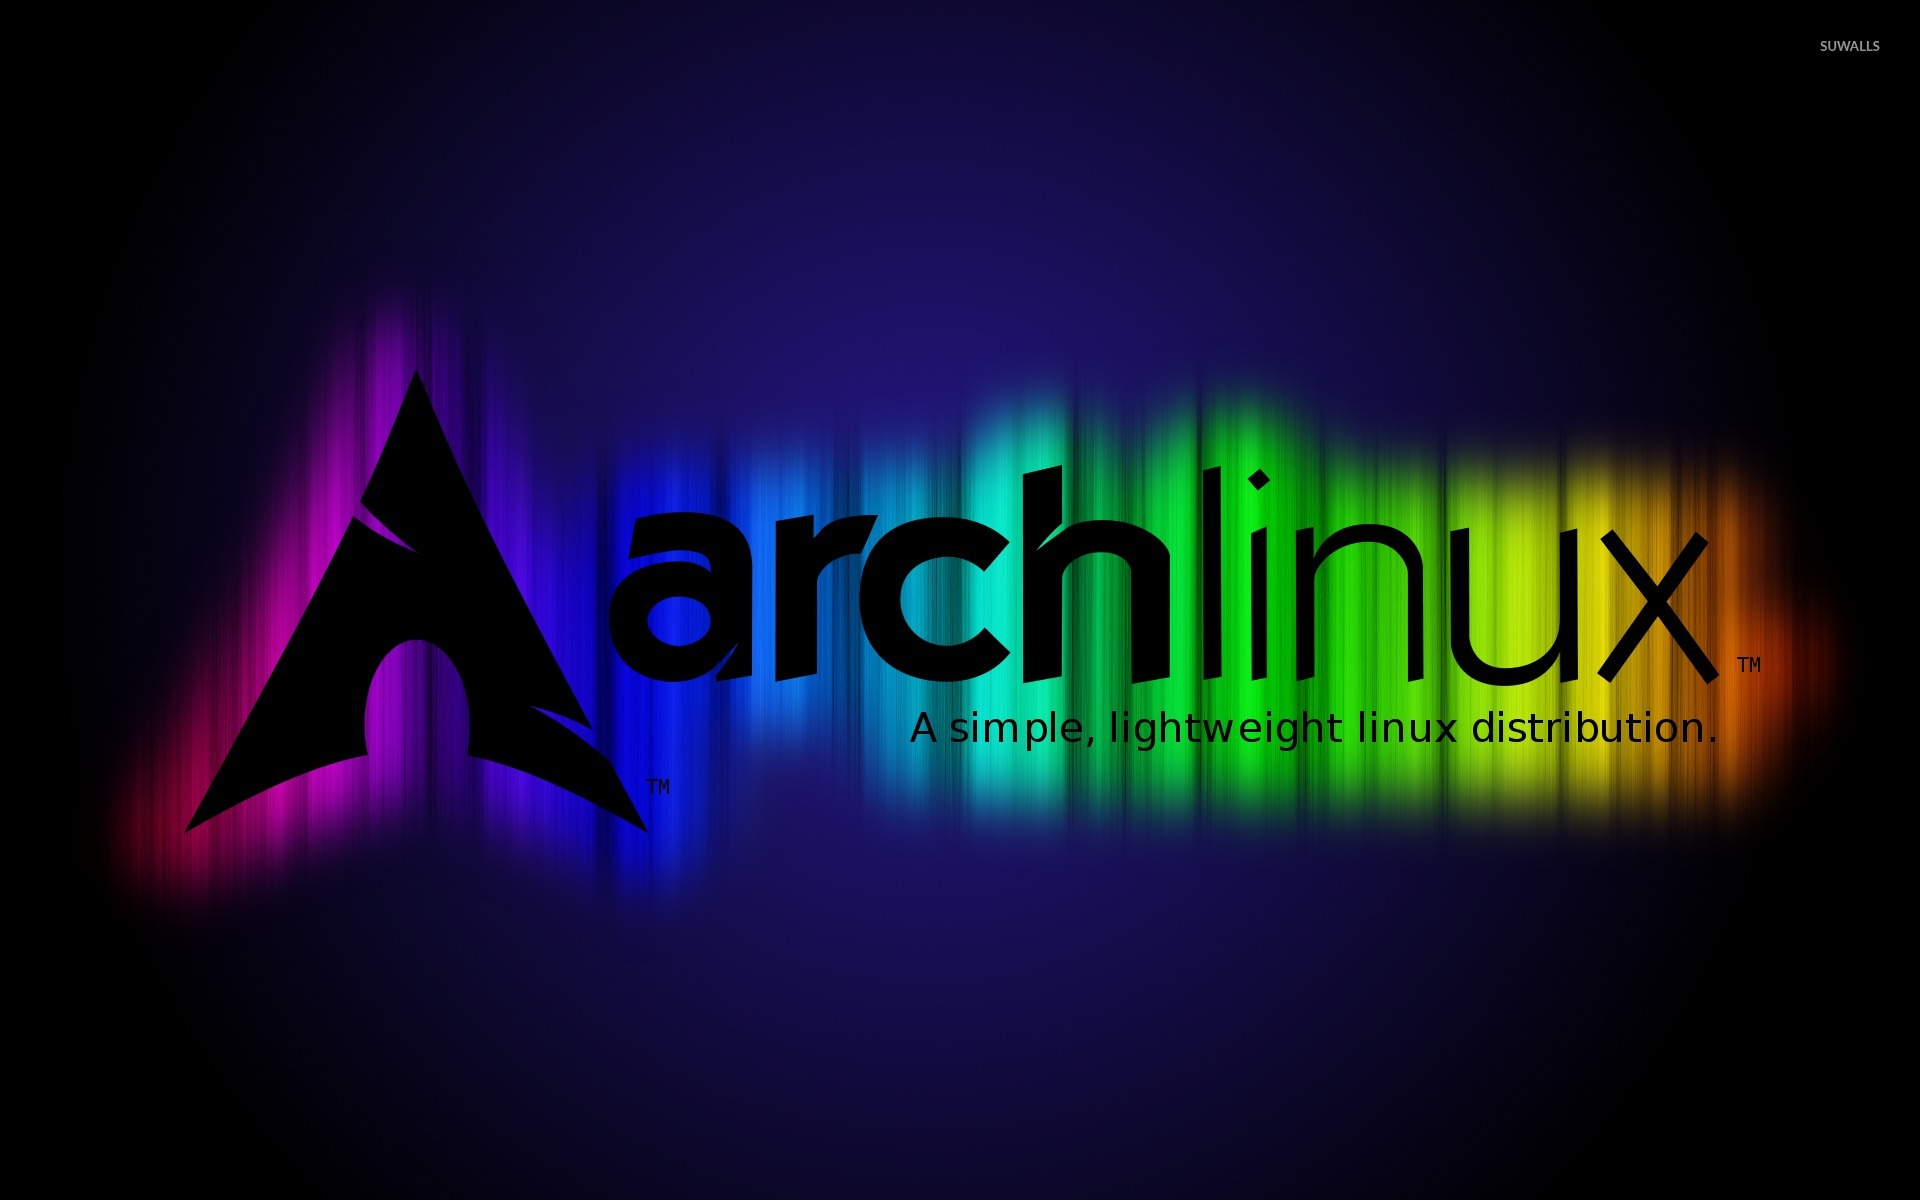 Arch Linux [4] wallpaper - Computer wallpapers - #90